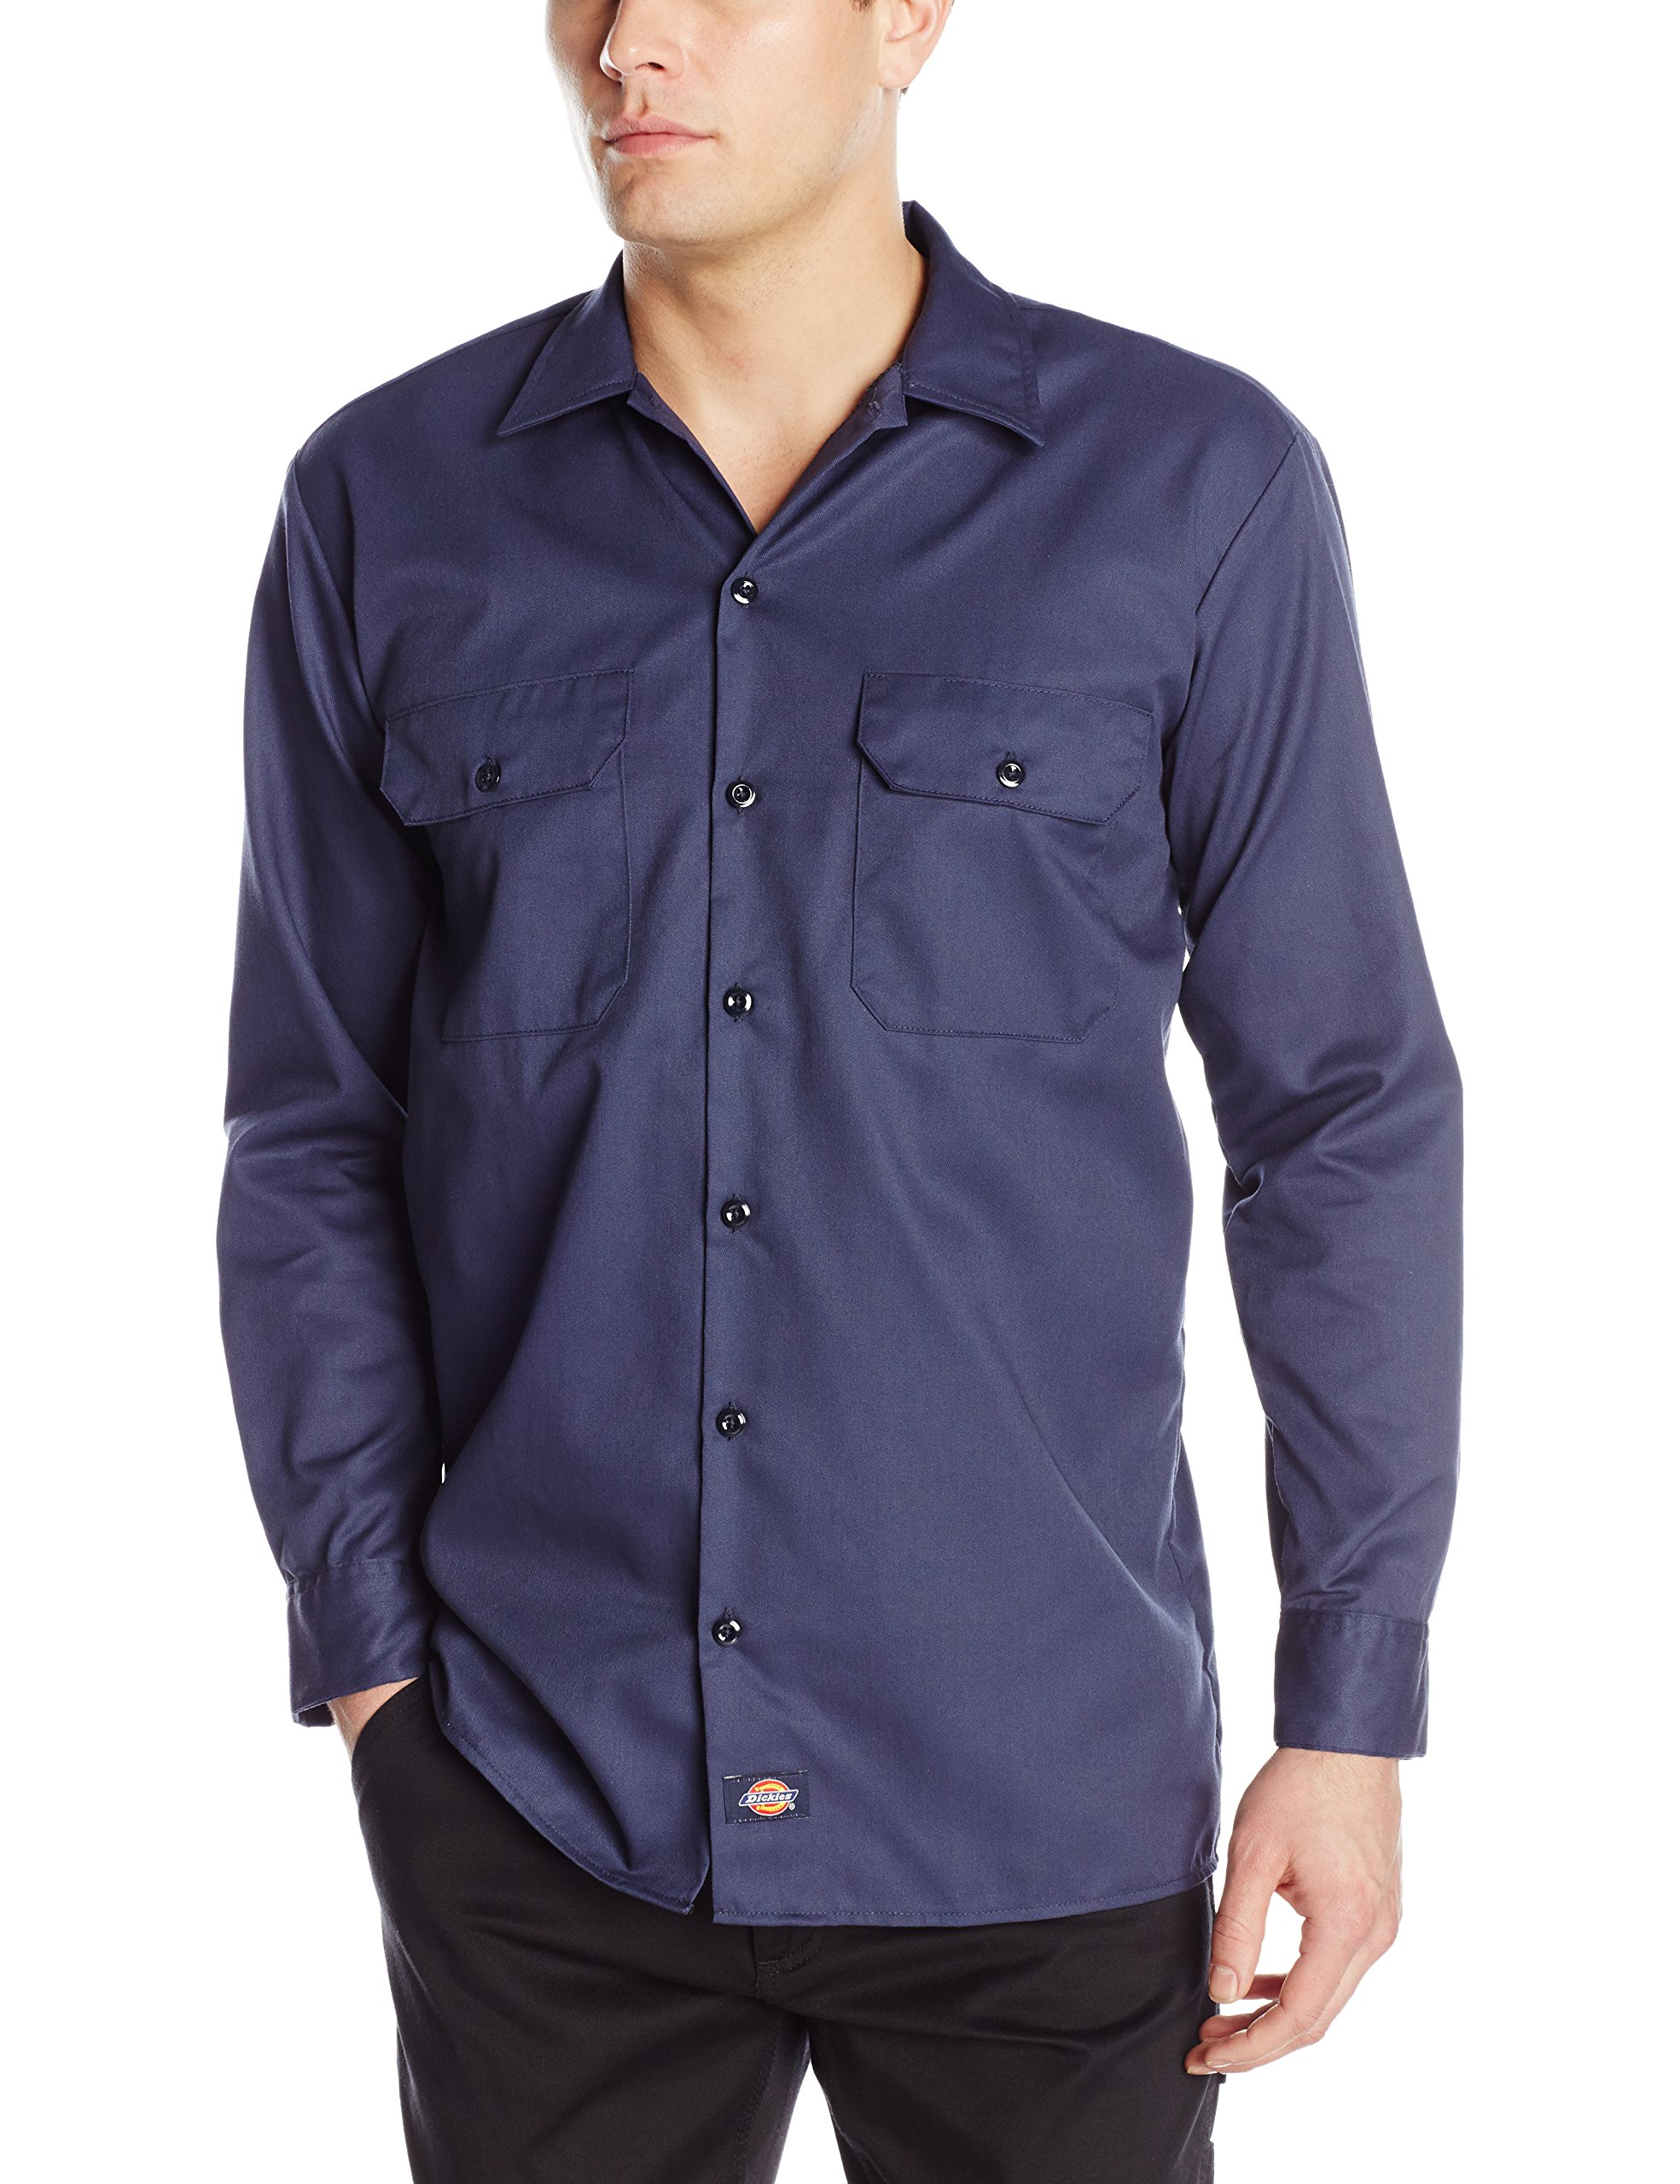 bdce0d3e52d Long Sleeve Work Shirts Big And Tall